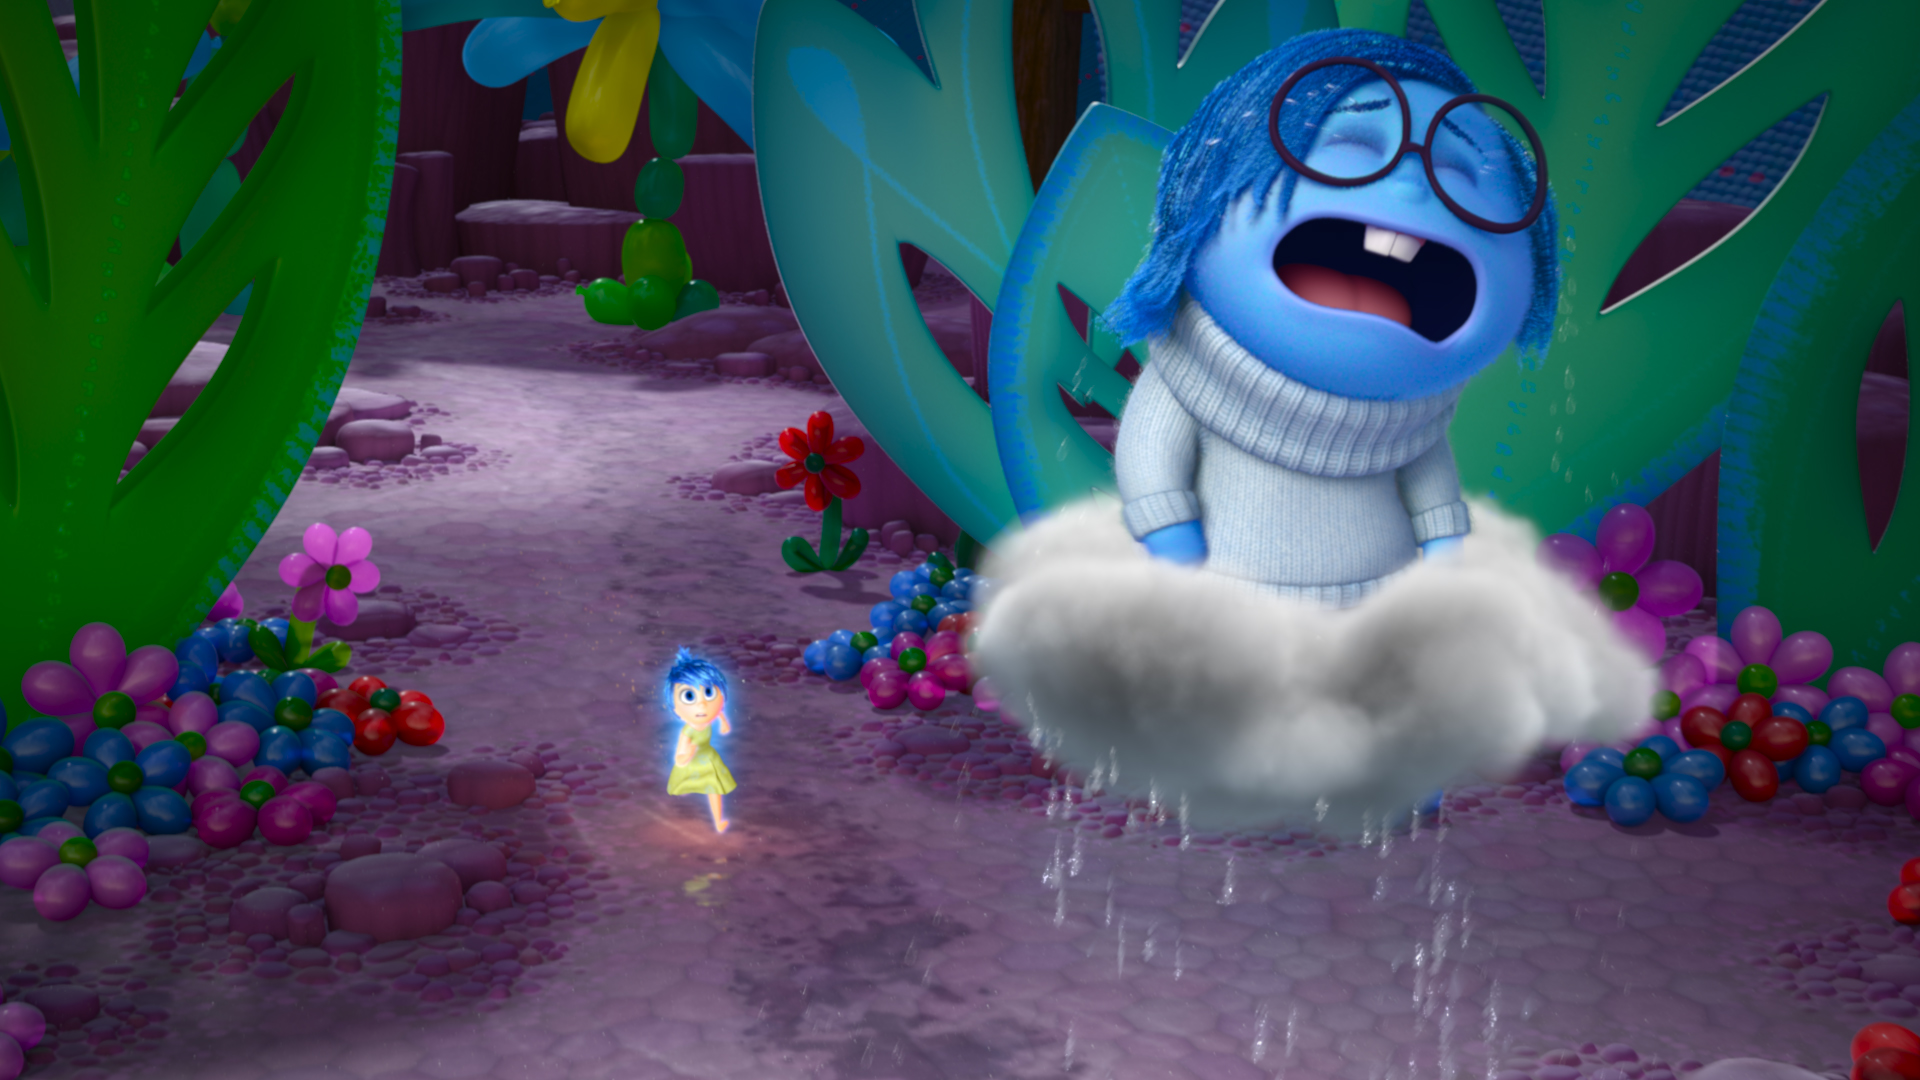 Sadness in Inside Out